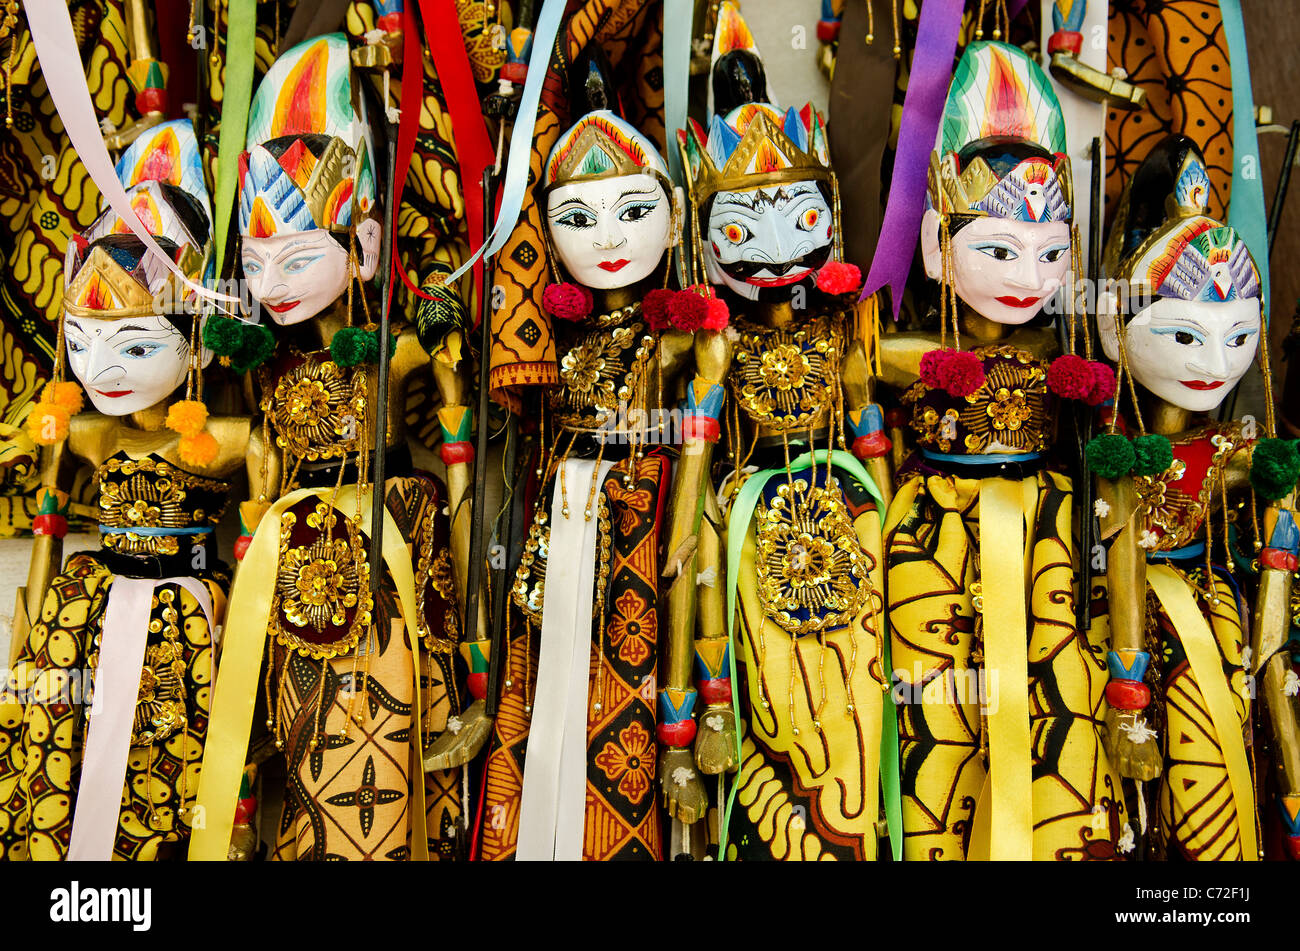 traditional wooden puppets in bali indonesia - Stock Image